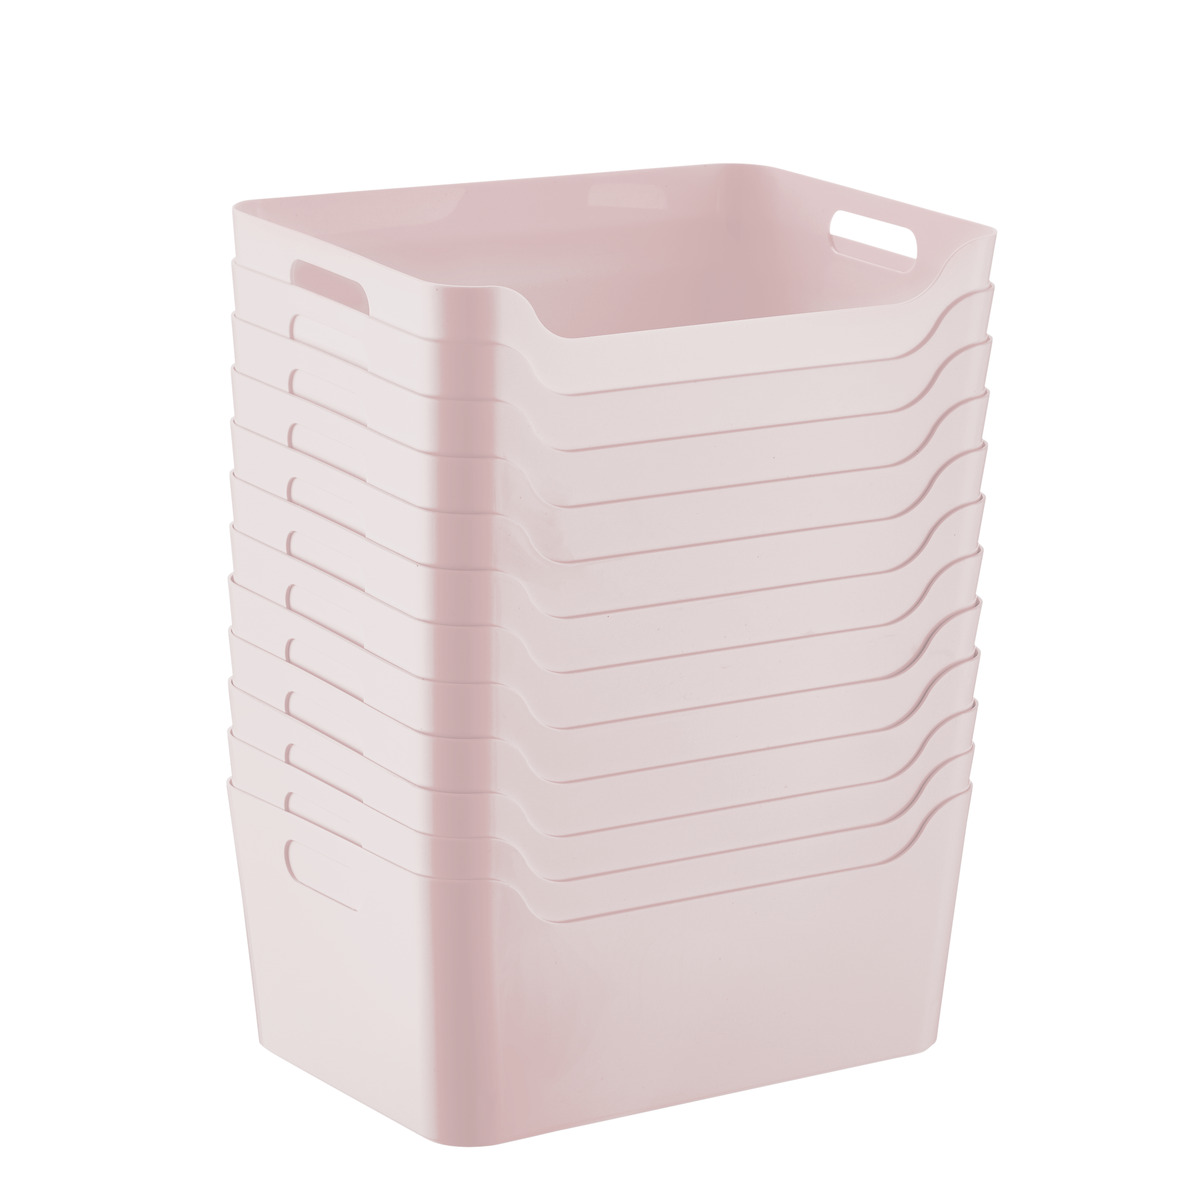 Case of 12 of Smoke Soft Pink Storage Bins with Handles